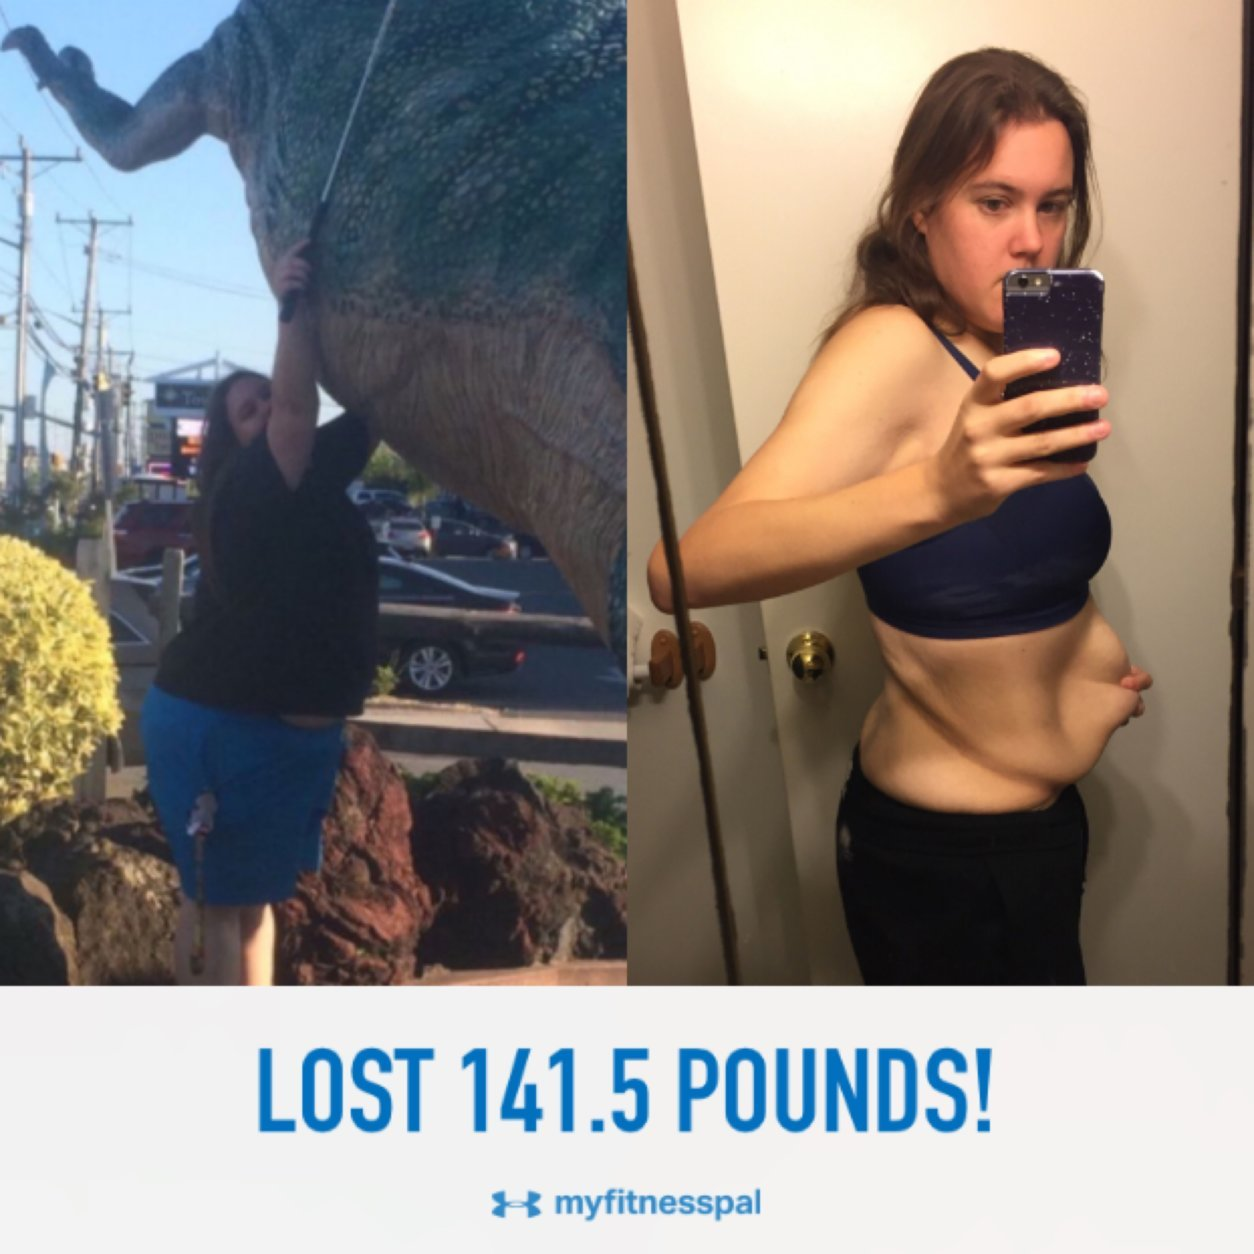 Roberts said her weight loss journey was far from straightforward. She lost 100 pounds in college only to gain it back, and she said this helped her realize that her motivation needed to be intrinsic and not based on what others think of her. (Courtesy Candace Roberts)